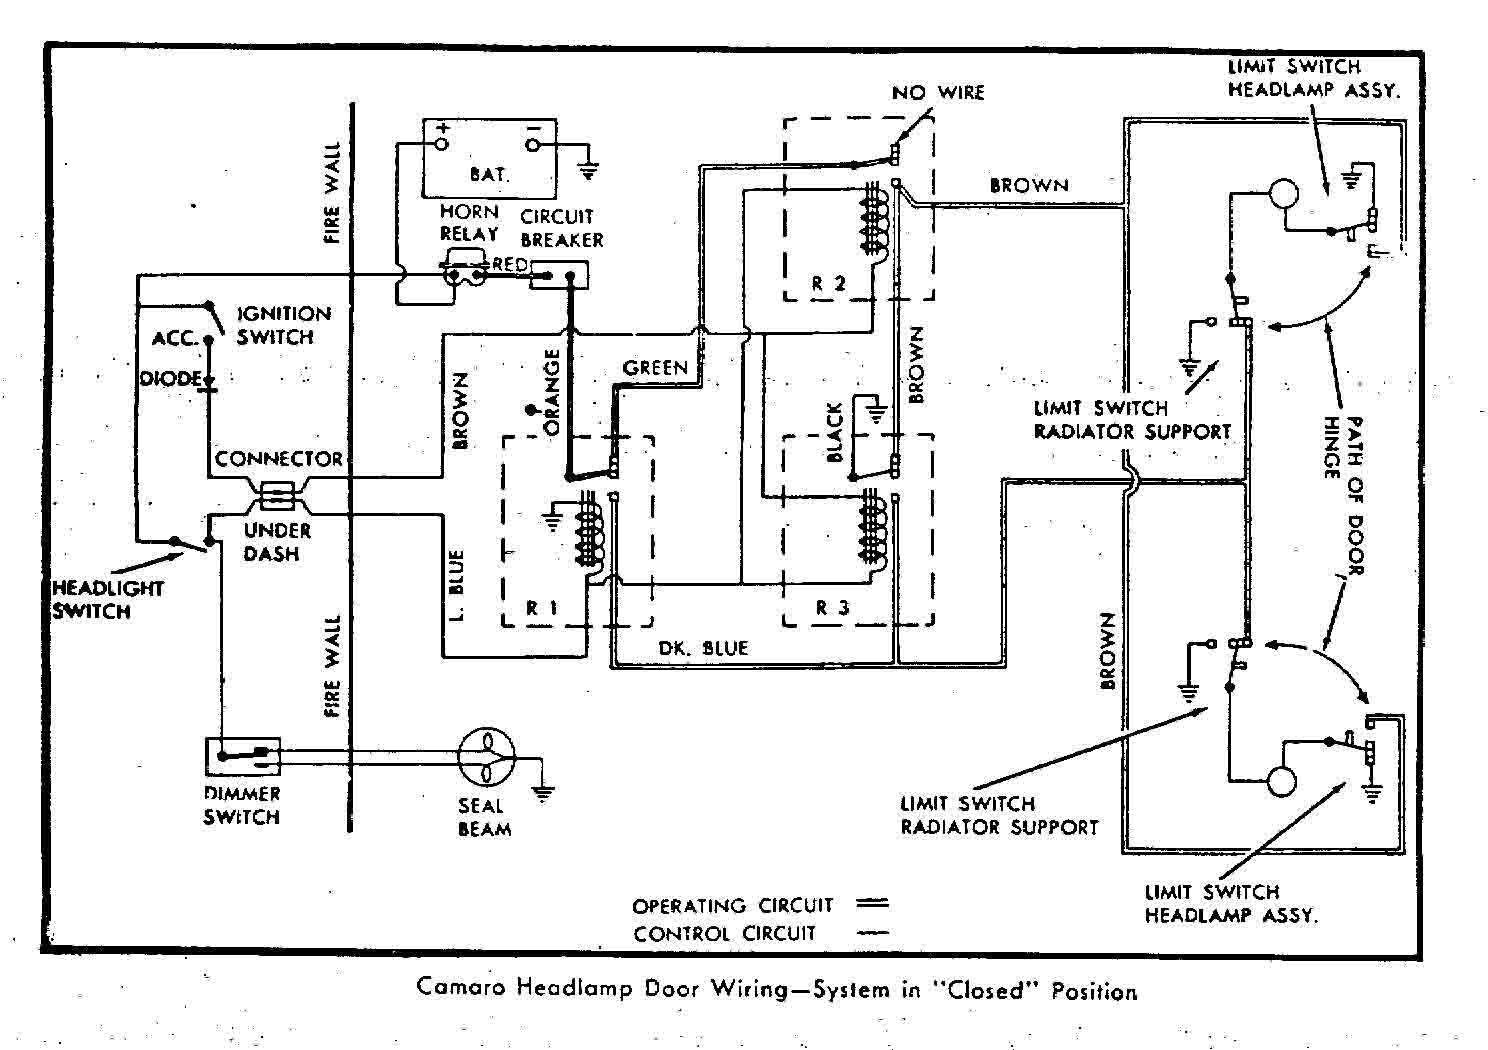 68 camaro shifter wiring diagram 1 wohnungzumieten de \u20221967 camaro tail lights wiring diagram wiring schematic diagram rh 164 twizer co 1968 camaro dash wiring diagram 1968 camaro dash wiring diagram